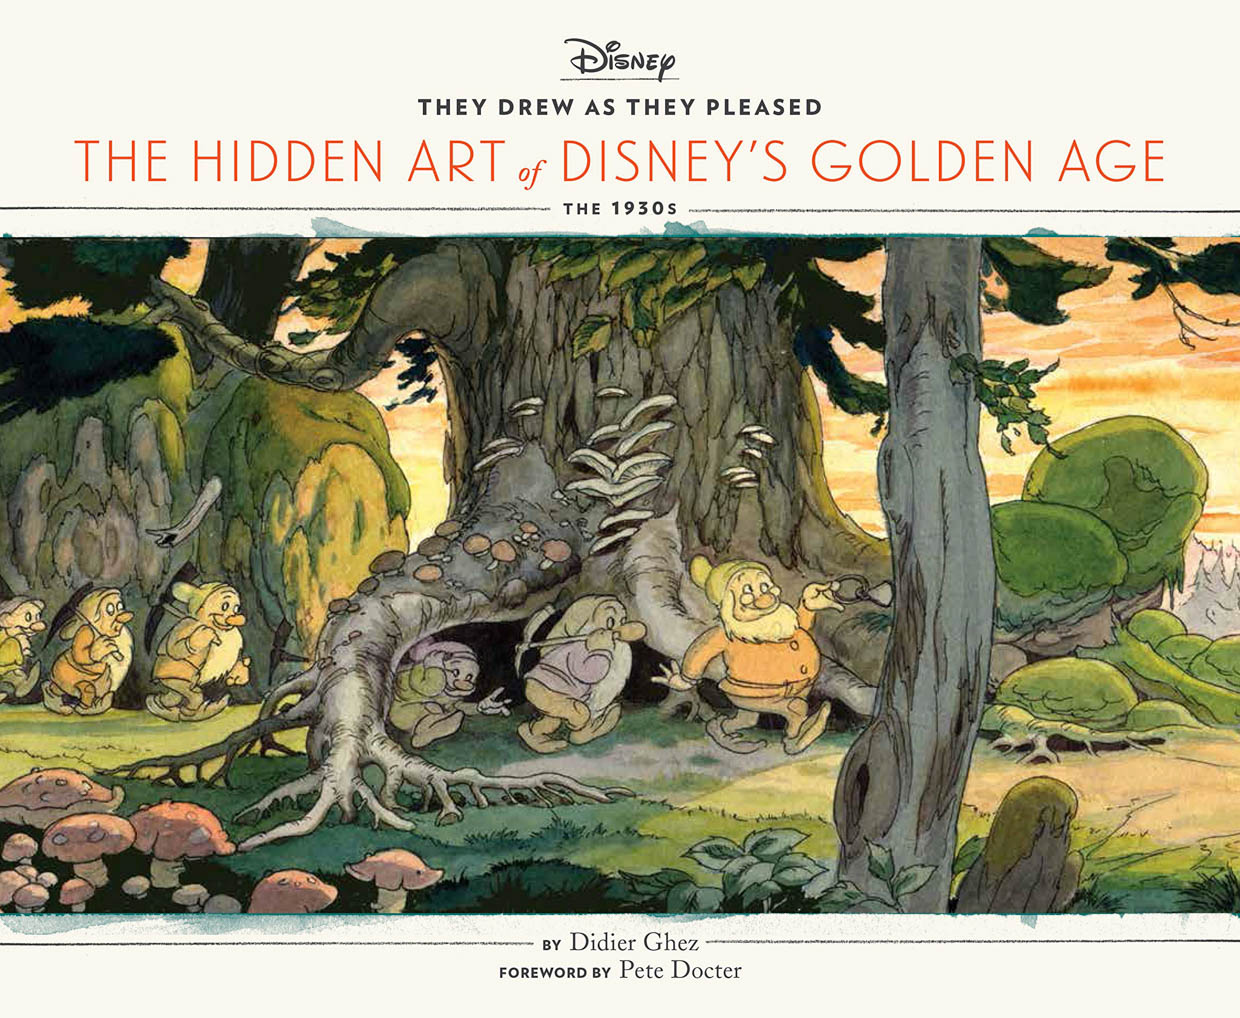 The Hidden Art of Disney: They Drew as They Pleased